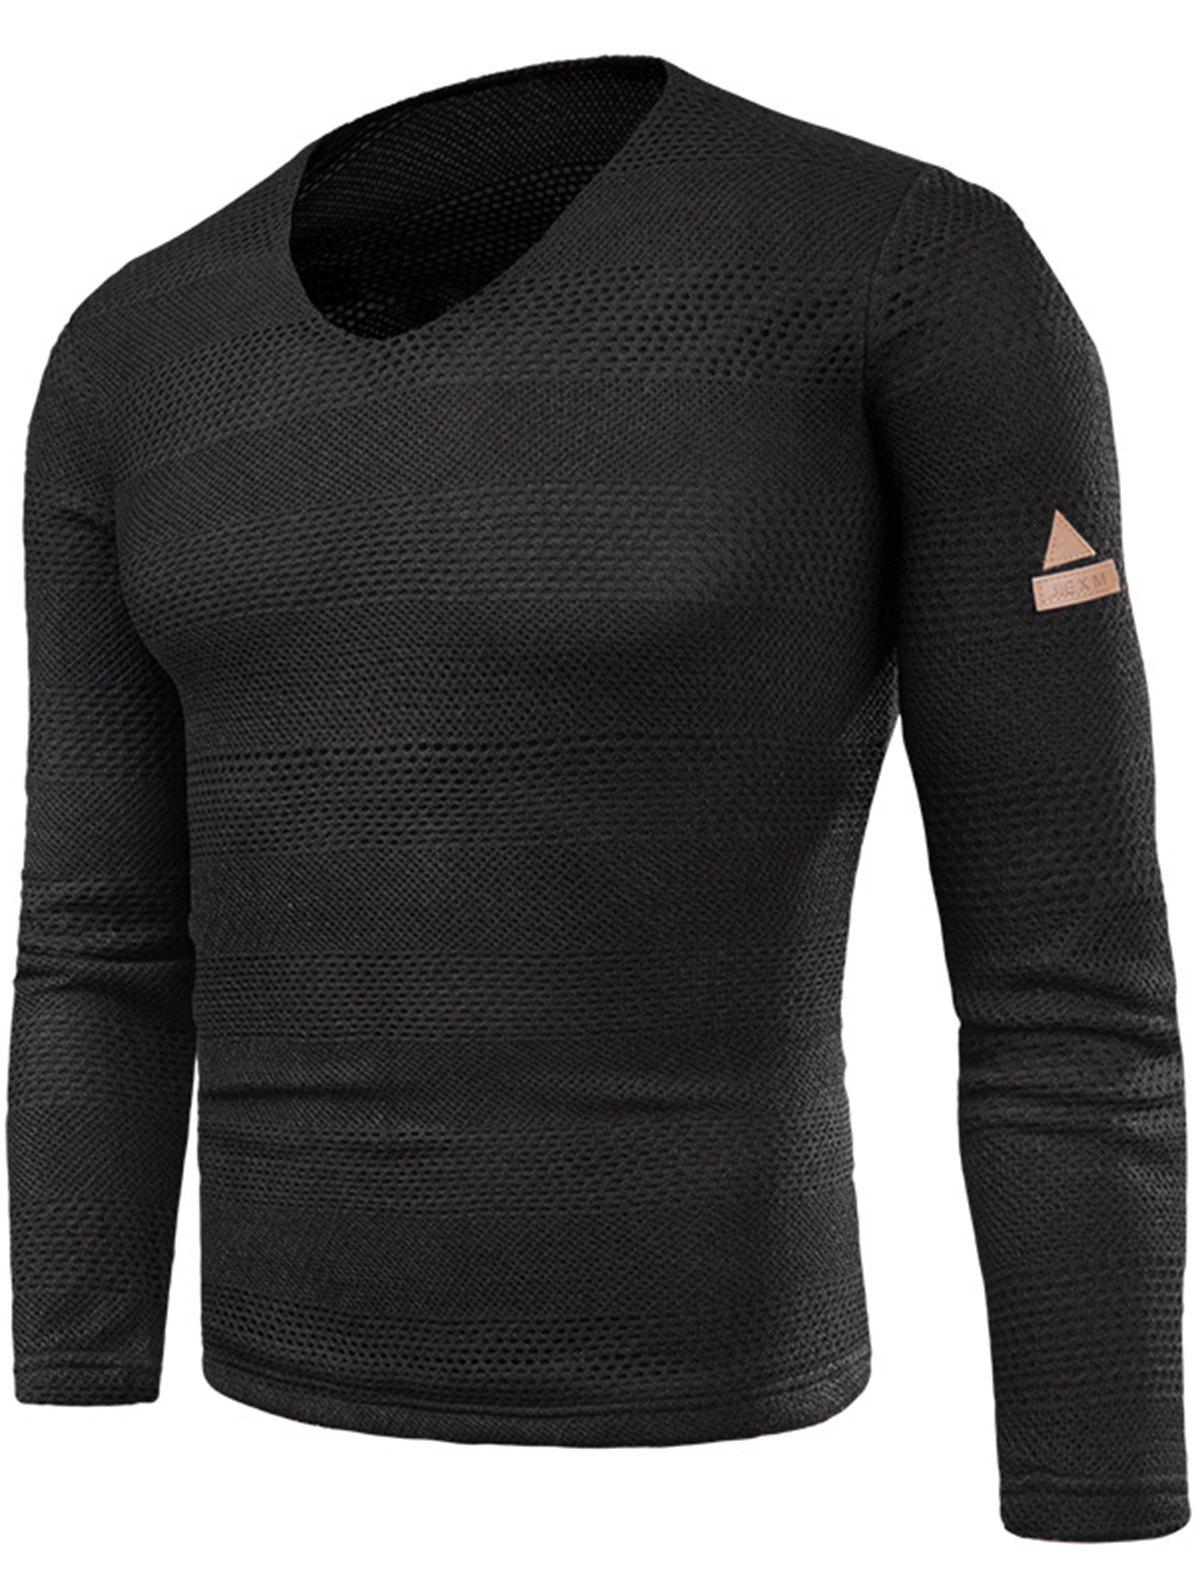 Shops V Neck Long Sleeve Knitted T-shirt